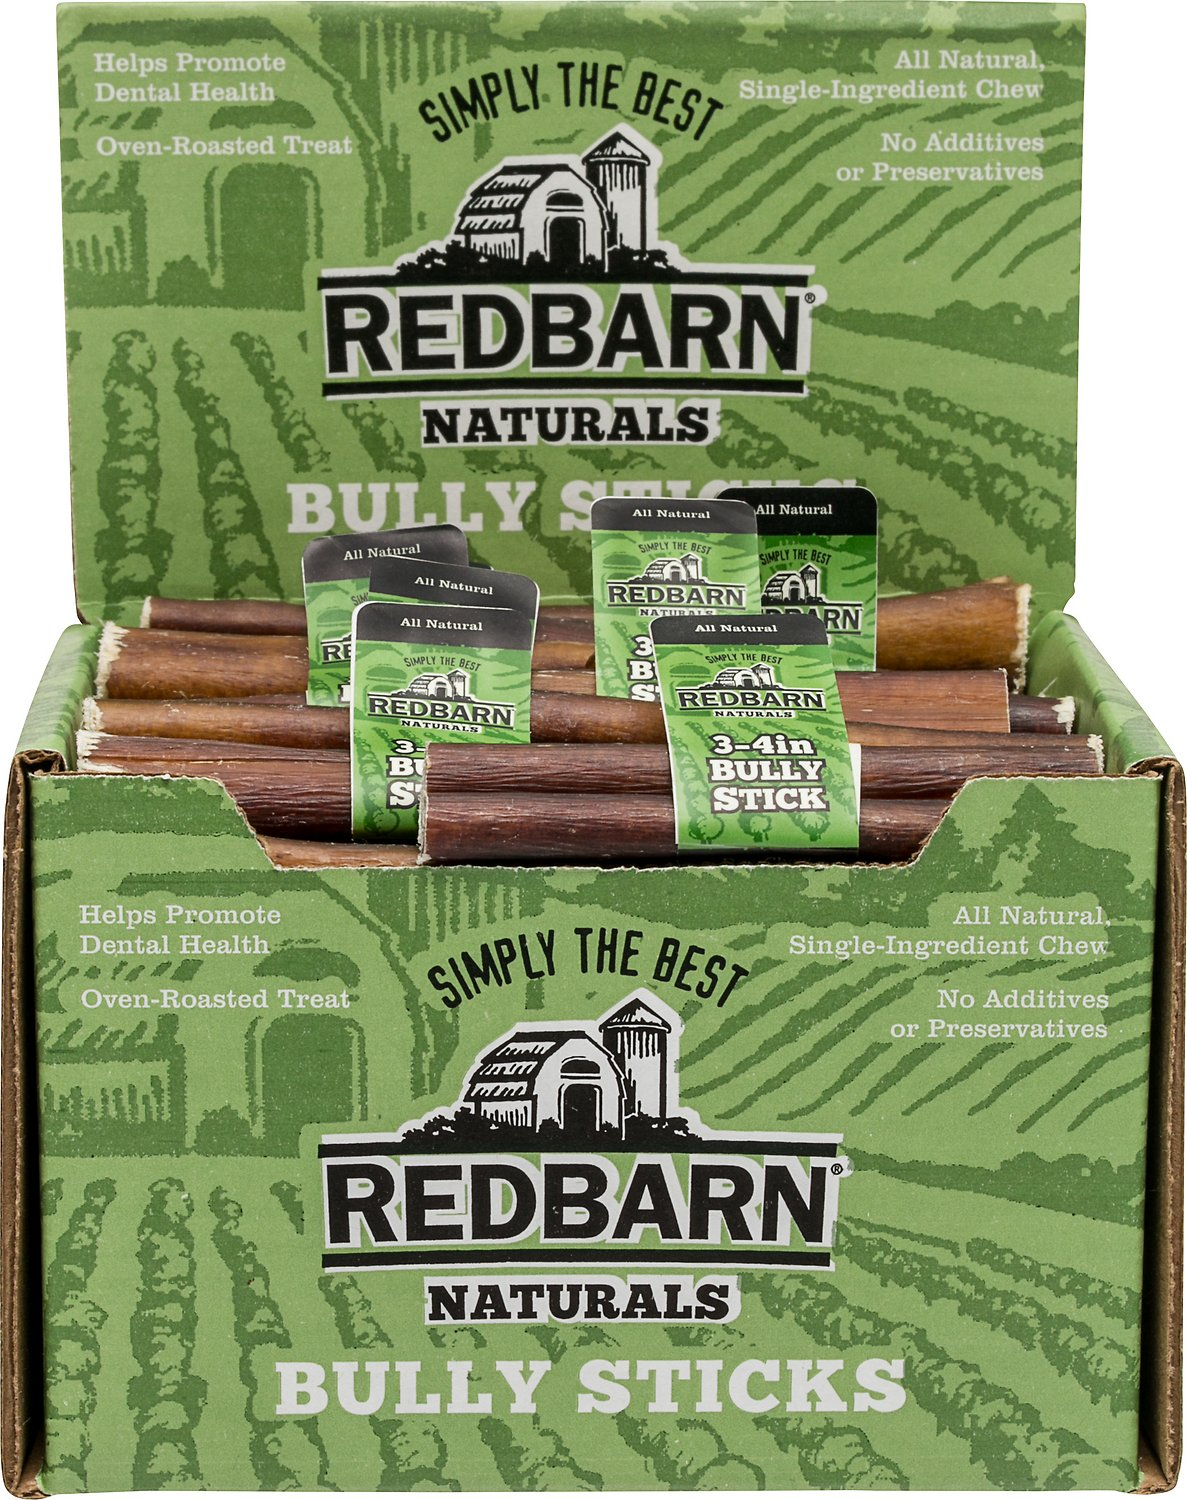 redbarn naturals bully stick 3 4 dog treat case of 65. Black Bedroom Furniture Sets. Home Design Ideas